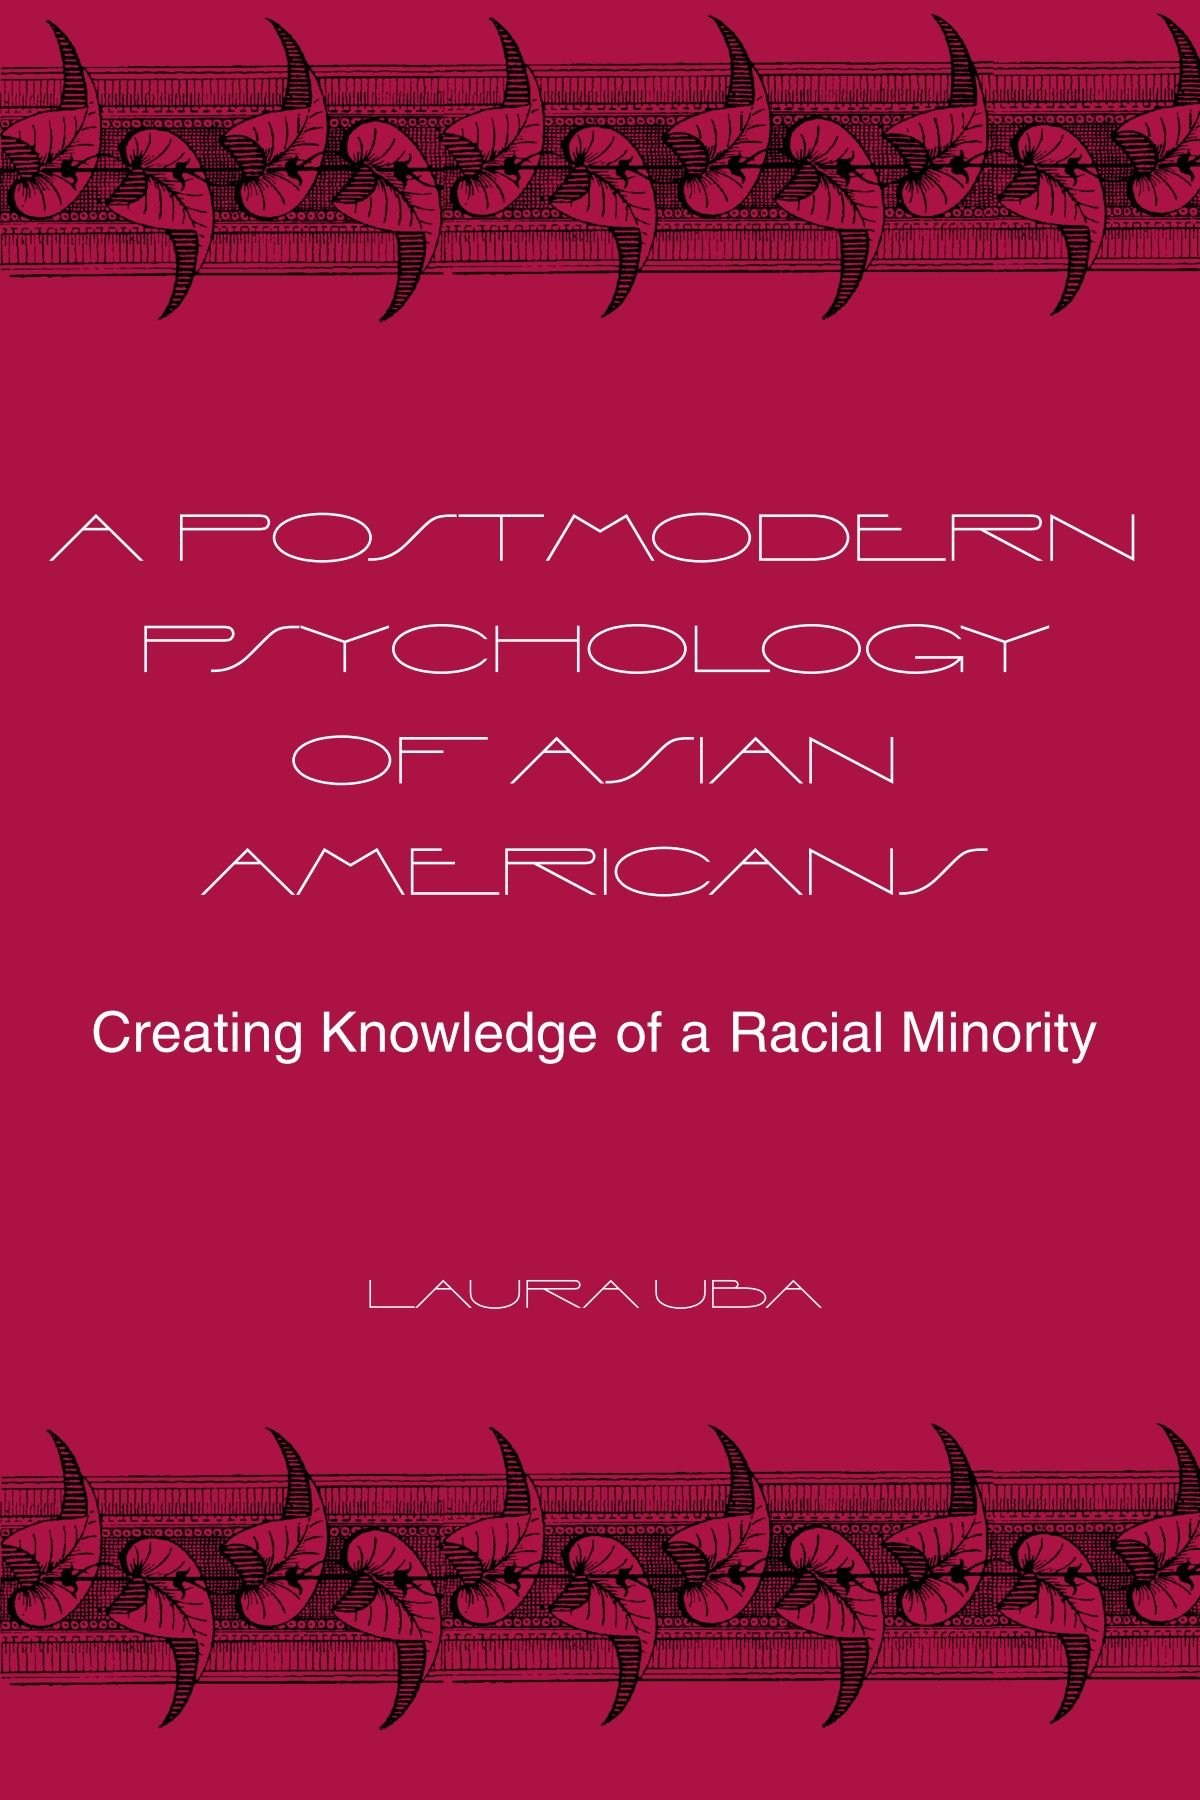 Download A Postmodern Psychology of Asian Americans: Creating Knowledge of a Racial Minority (SUNY series, Alternatives in Psychology) PDF